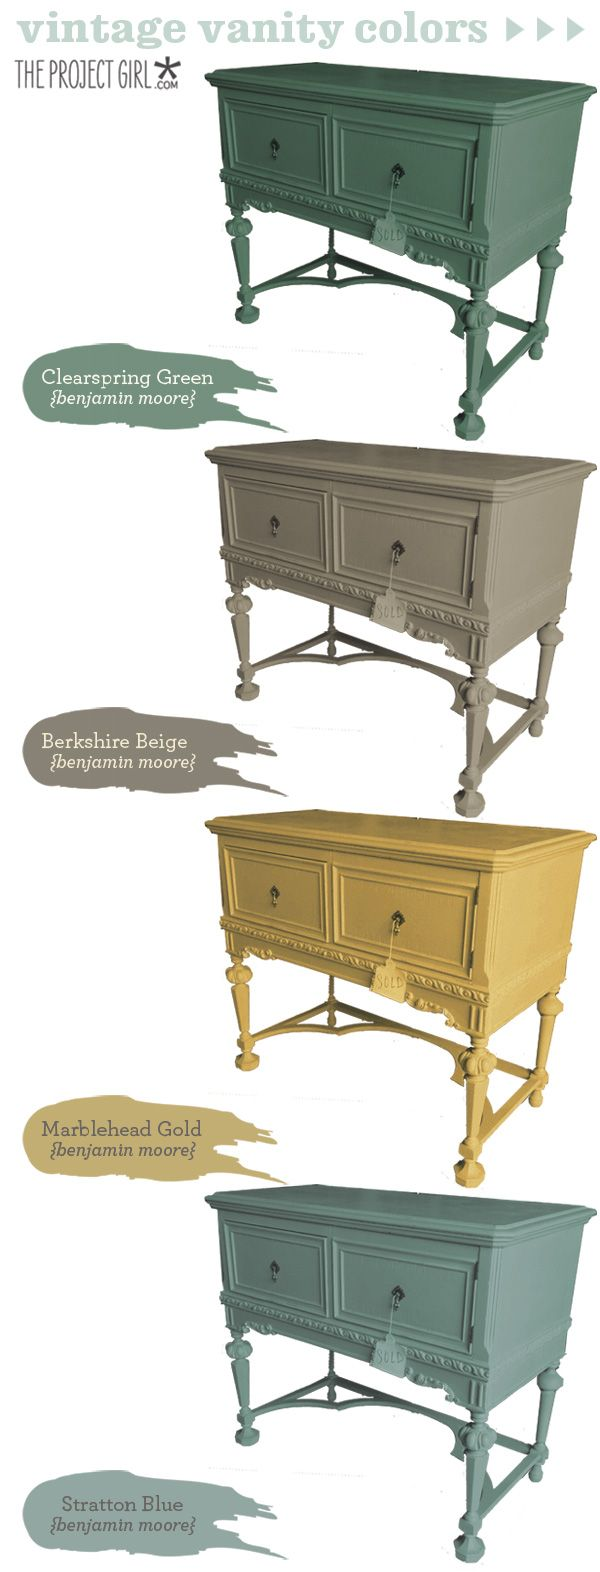 Vintage Furniture Paint Color by Benjamin Moore. Benjamin Moore  Clearspring…love the yellow for home accents! - Love These Colors For Refinishing The Buffet. Project House Powder